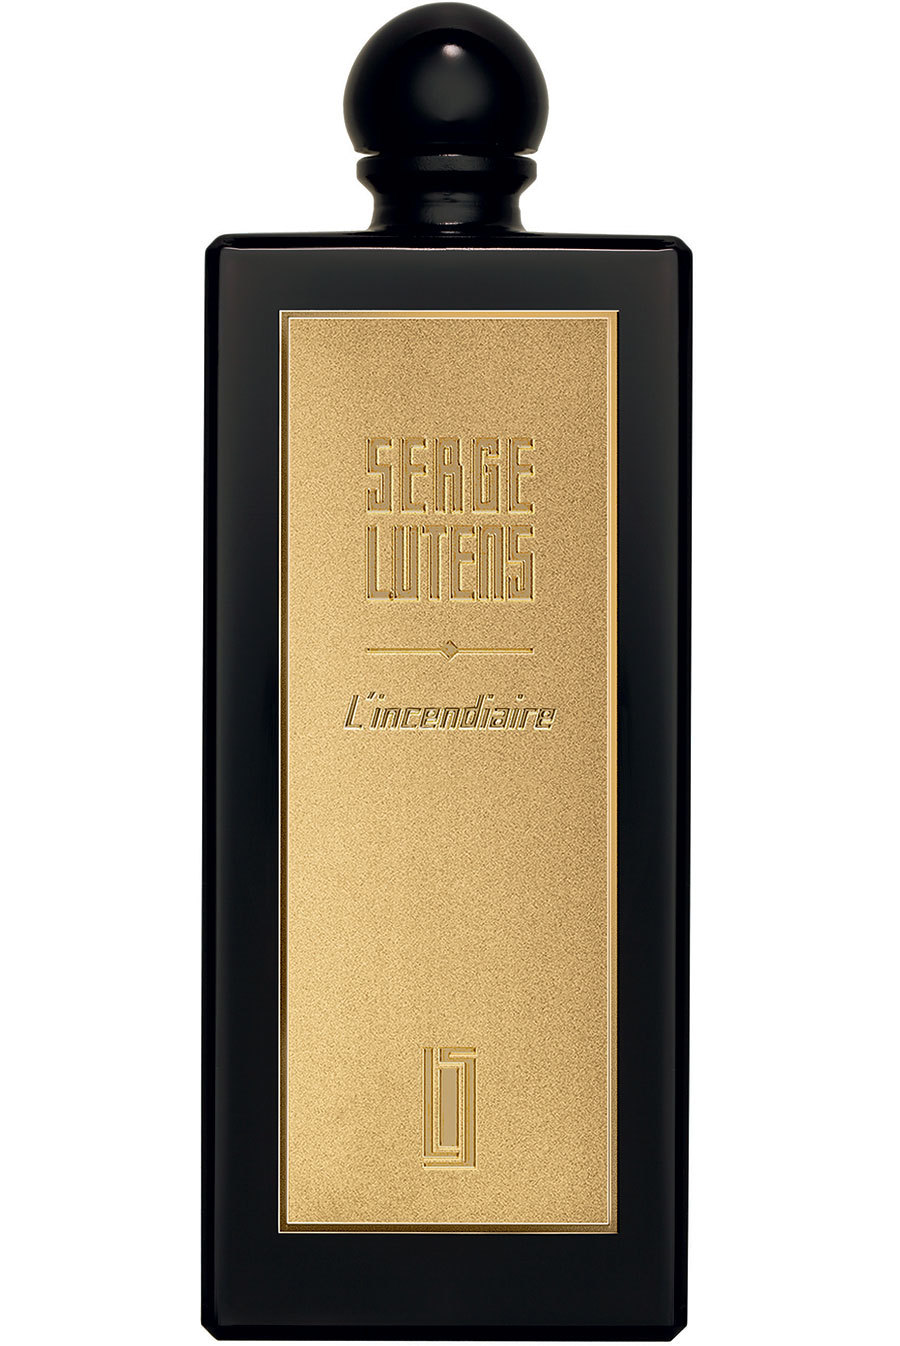 L'INCENDIAIRE by SERGE LUTENS 5ml Travel Spray PARFUM Resin Incense Birch